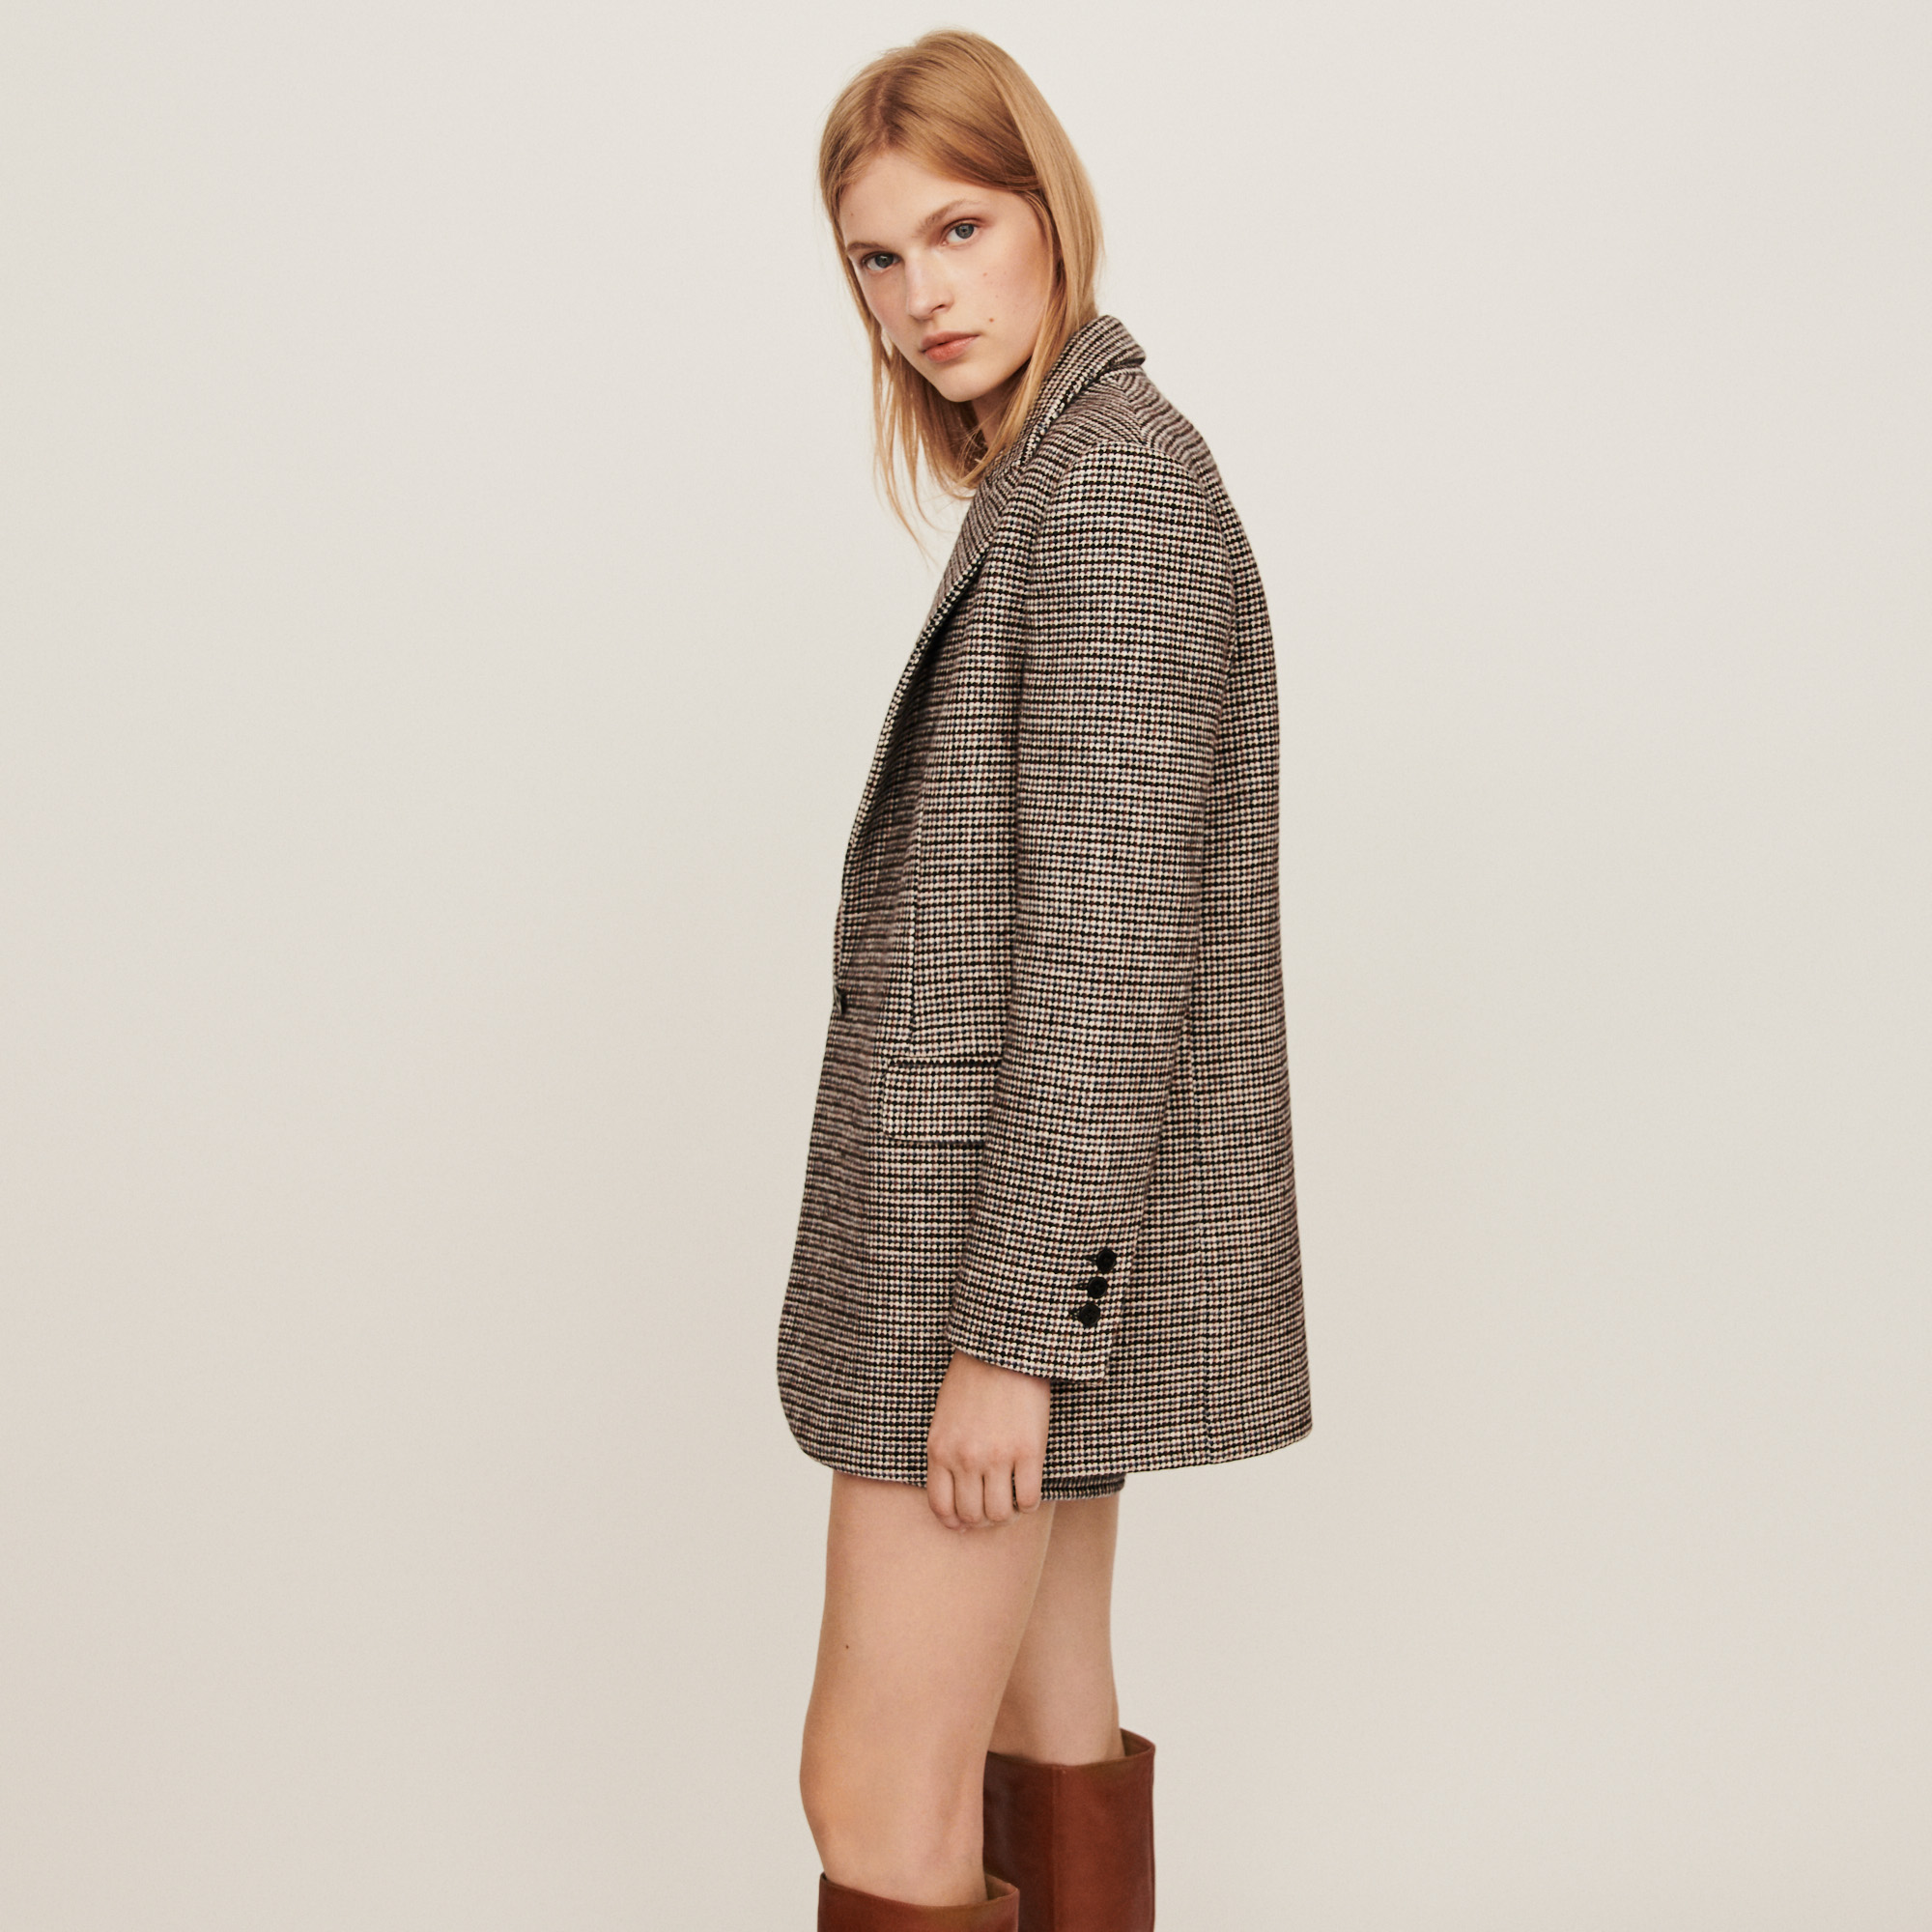 Grey plaid jacket style coat - Grey